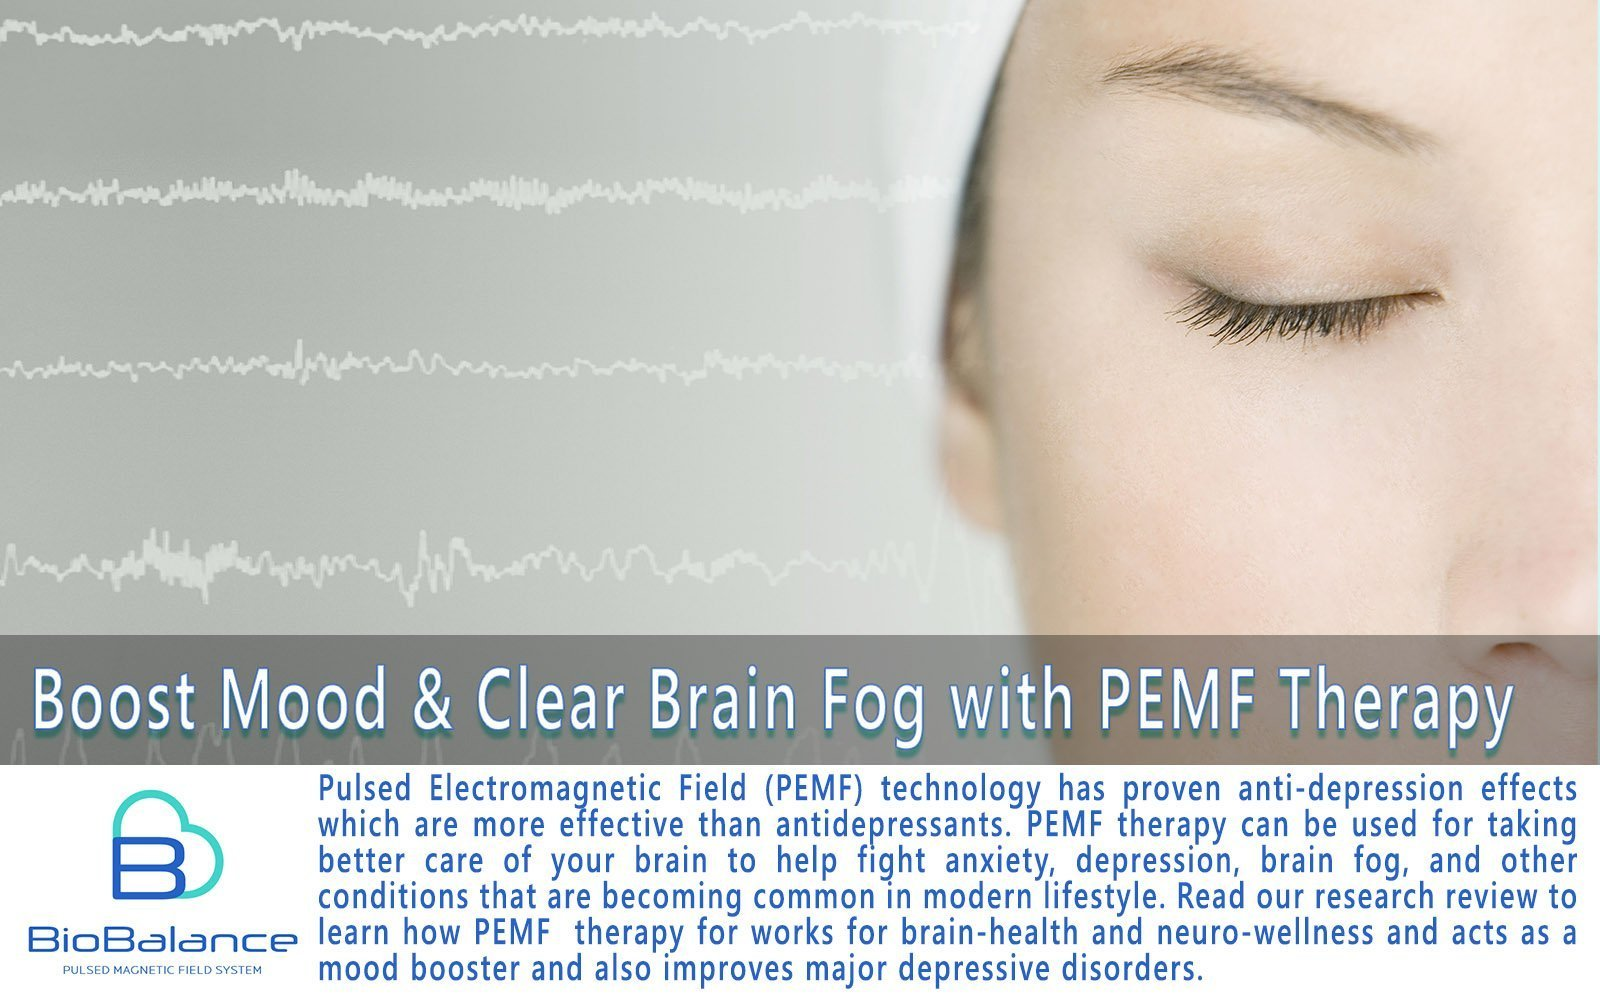 PEMF Therapy for Depression Boosts Mood & Clears Brain Fog